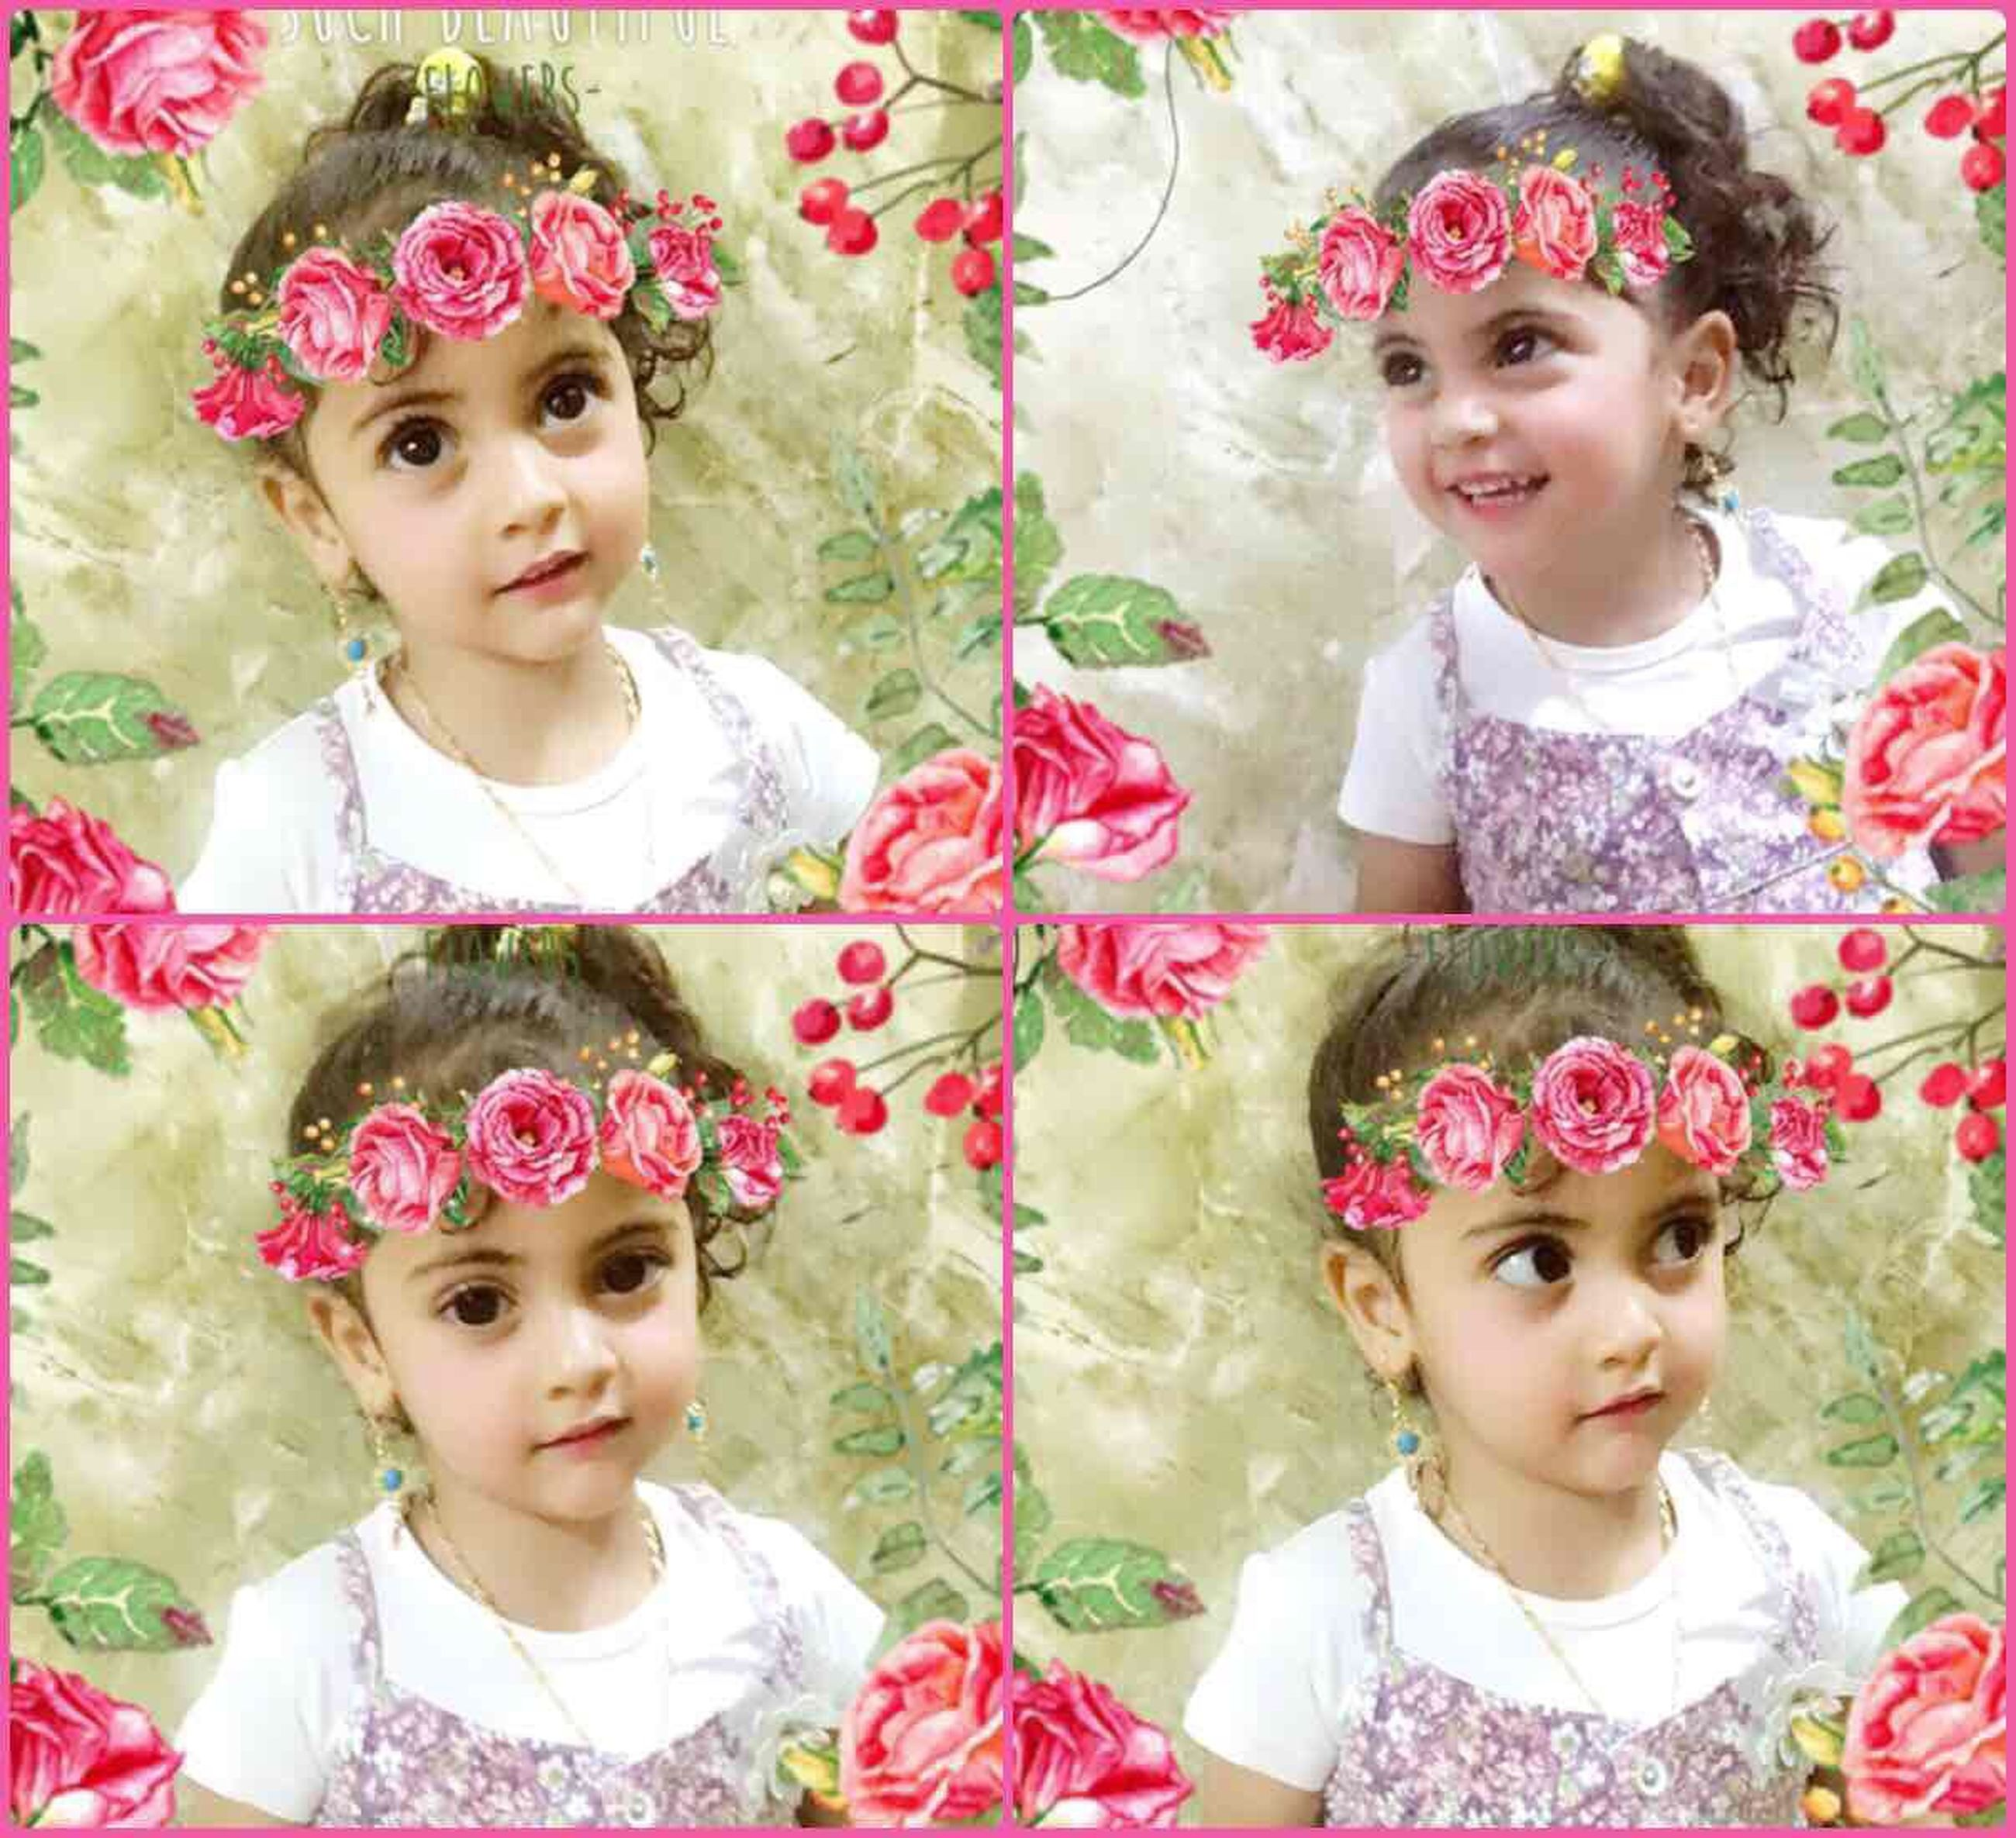 girls, childhood, child, crown, princess, tiara, innocence, cute, waist up, looking at camera, front view, children only, elementary age, togetherness, real people, portrait, wearing flowers, friendship, flower, headdress, day, headband, outdoors, close-up, people